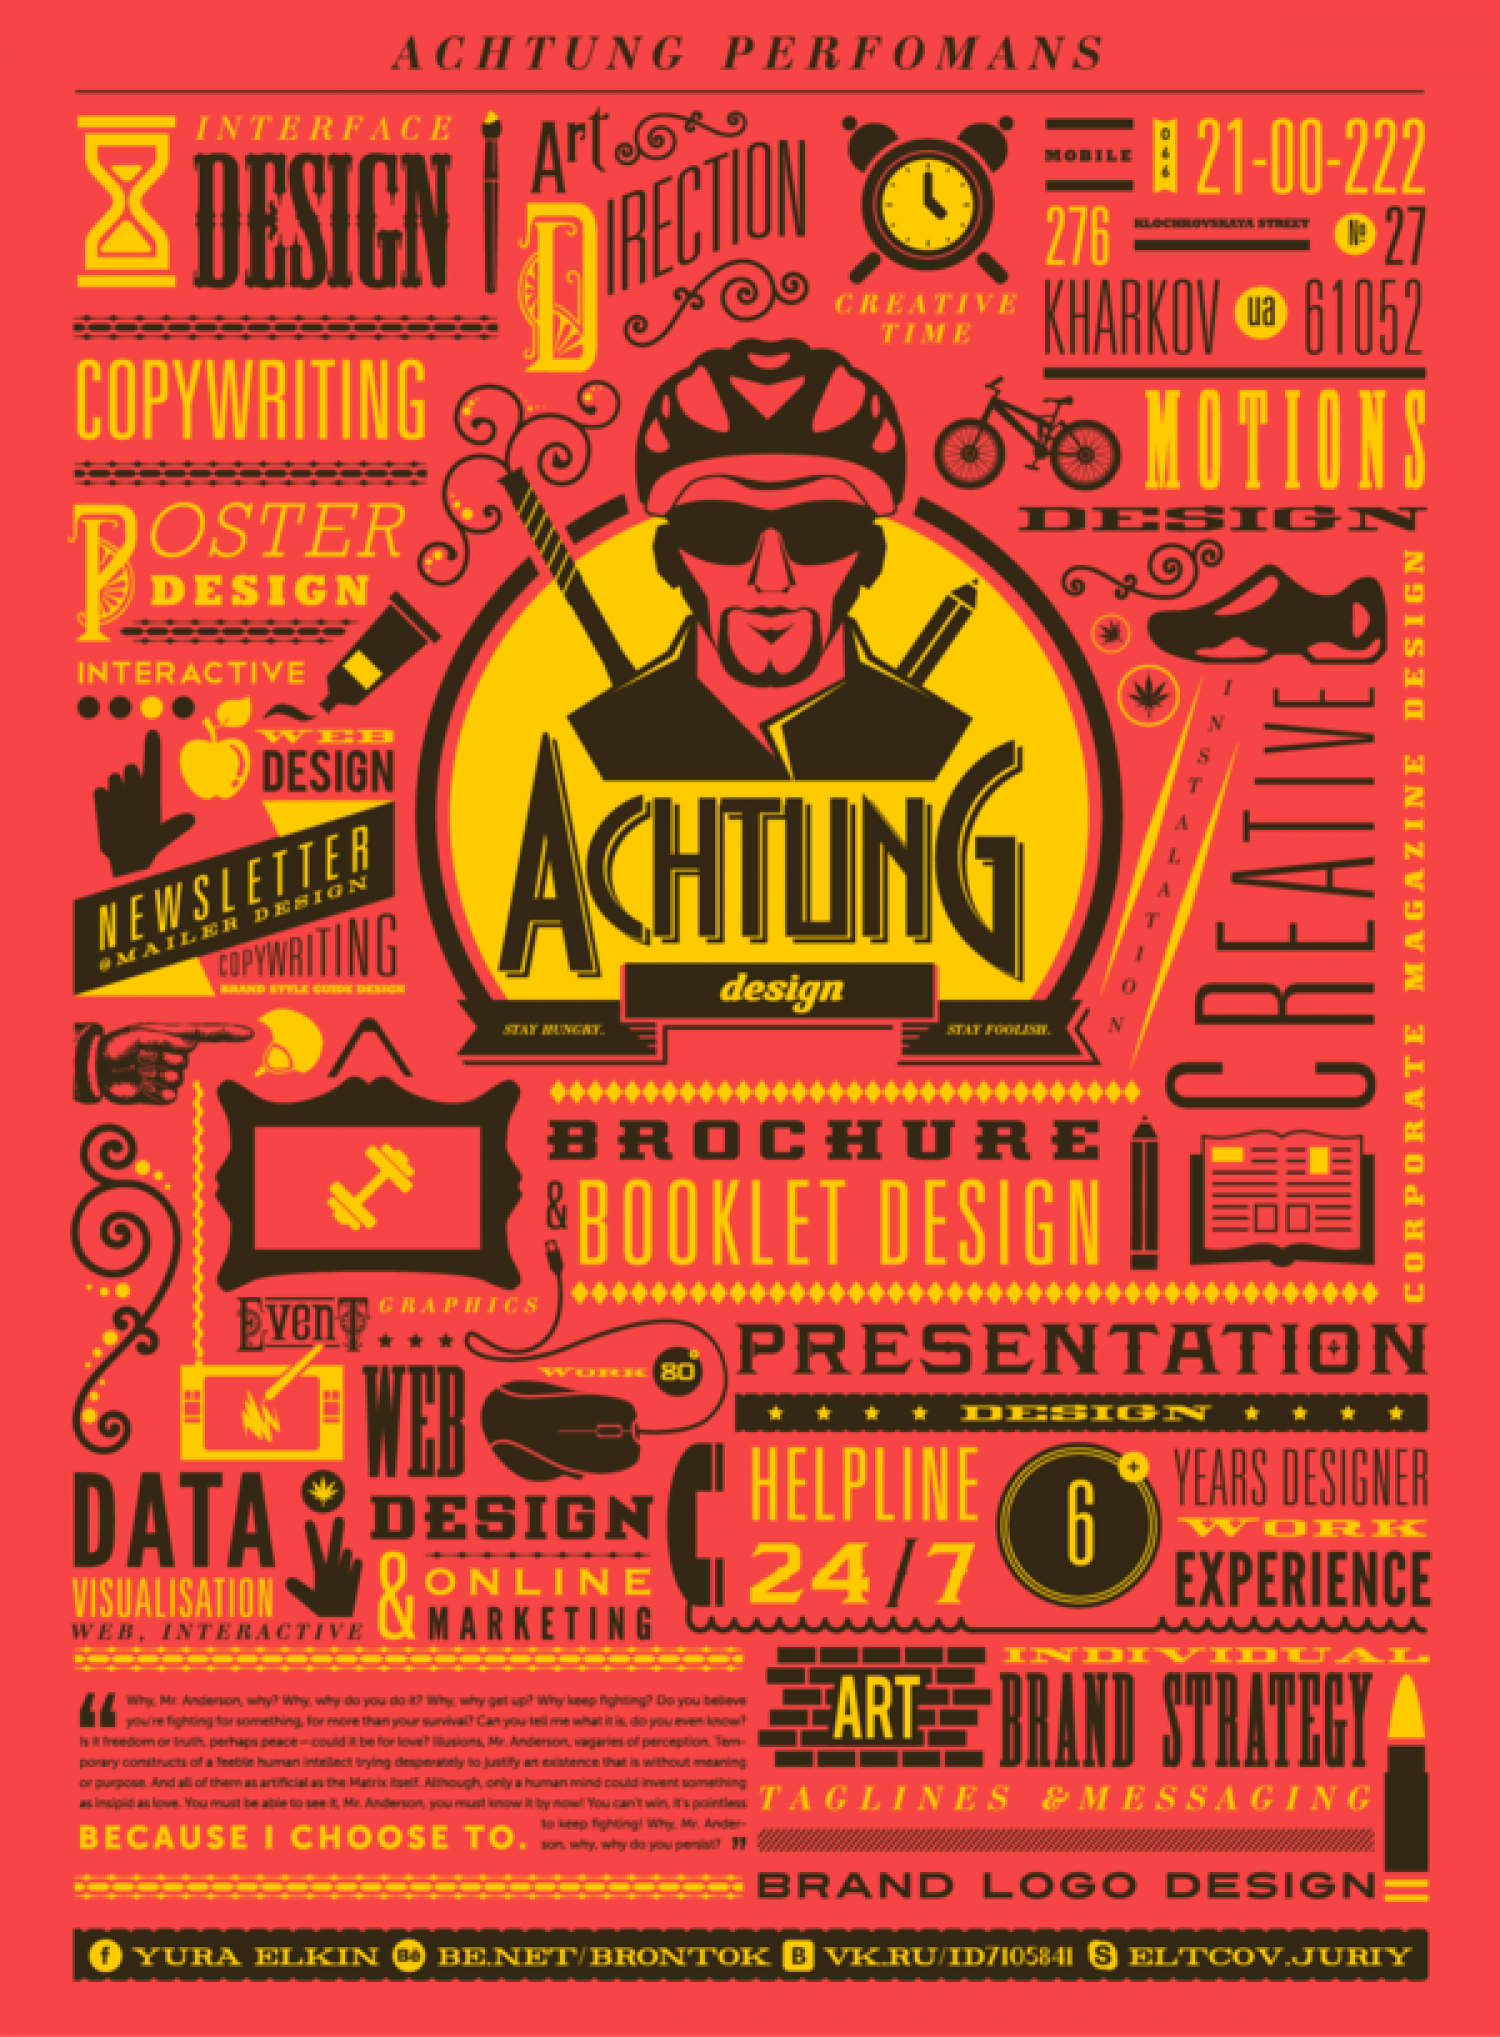 Achtung Design 2 Infographic